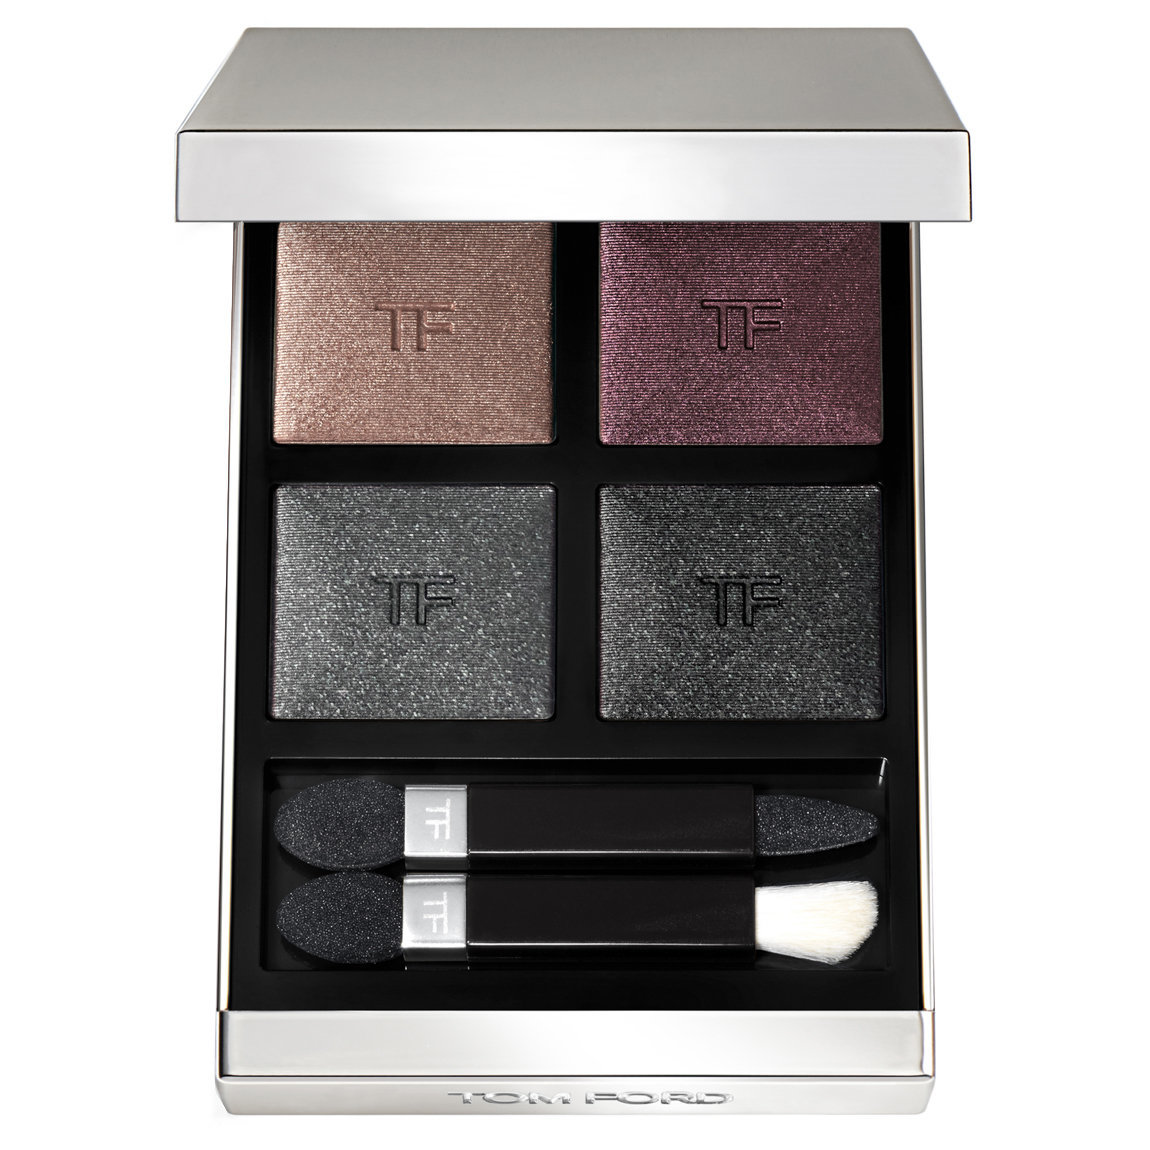 TOM FORD Extrême Eye Color Quad product swatch.